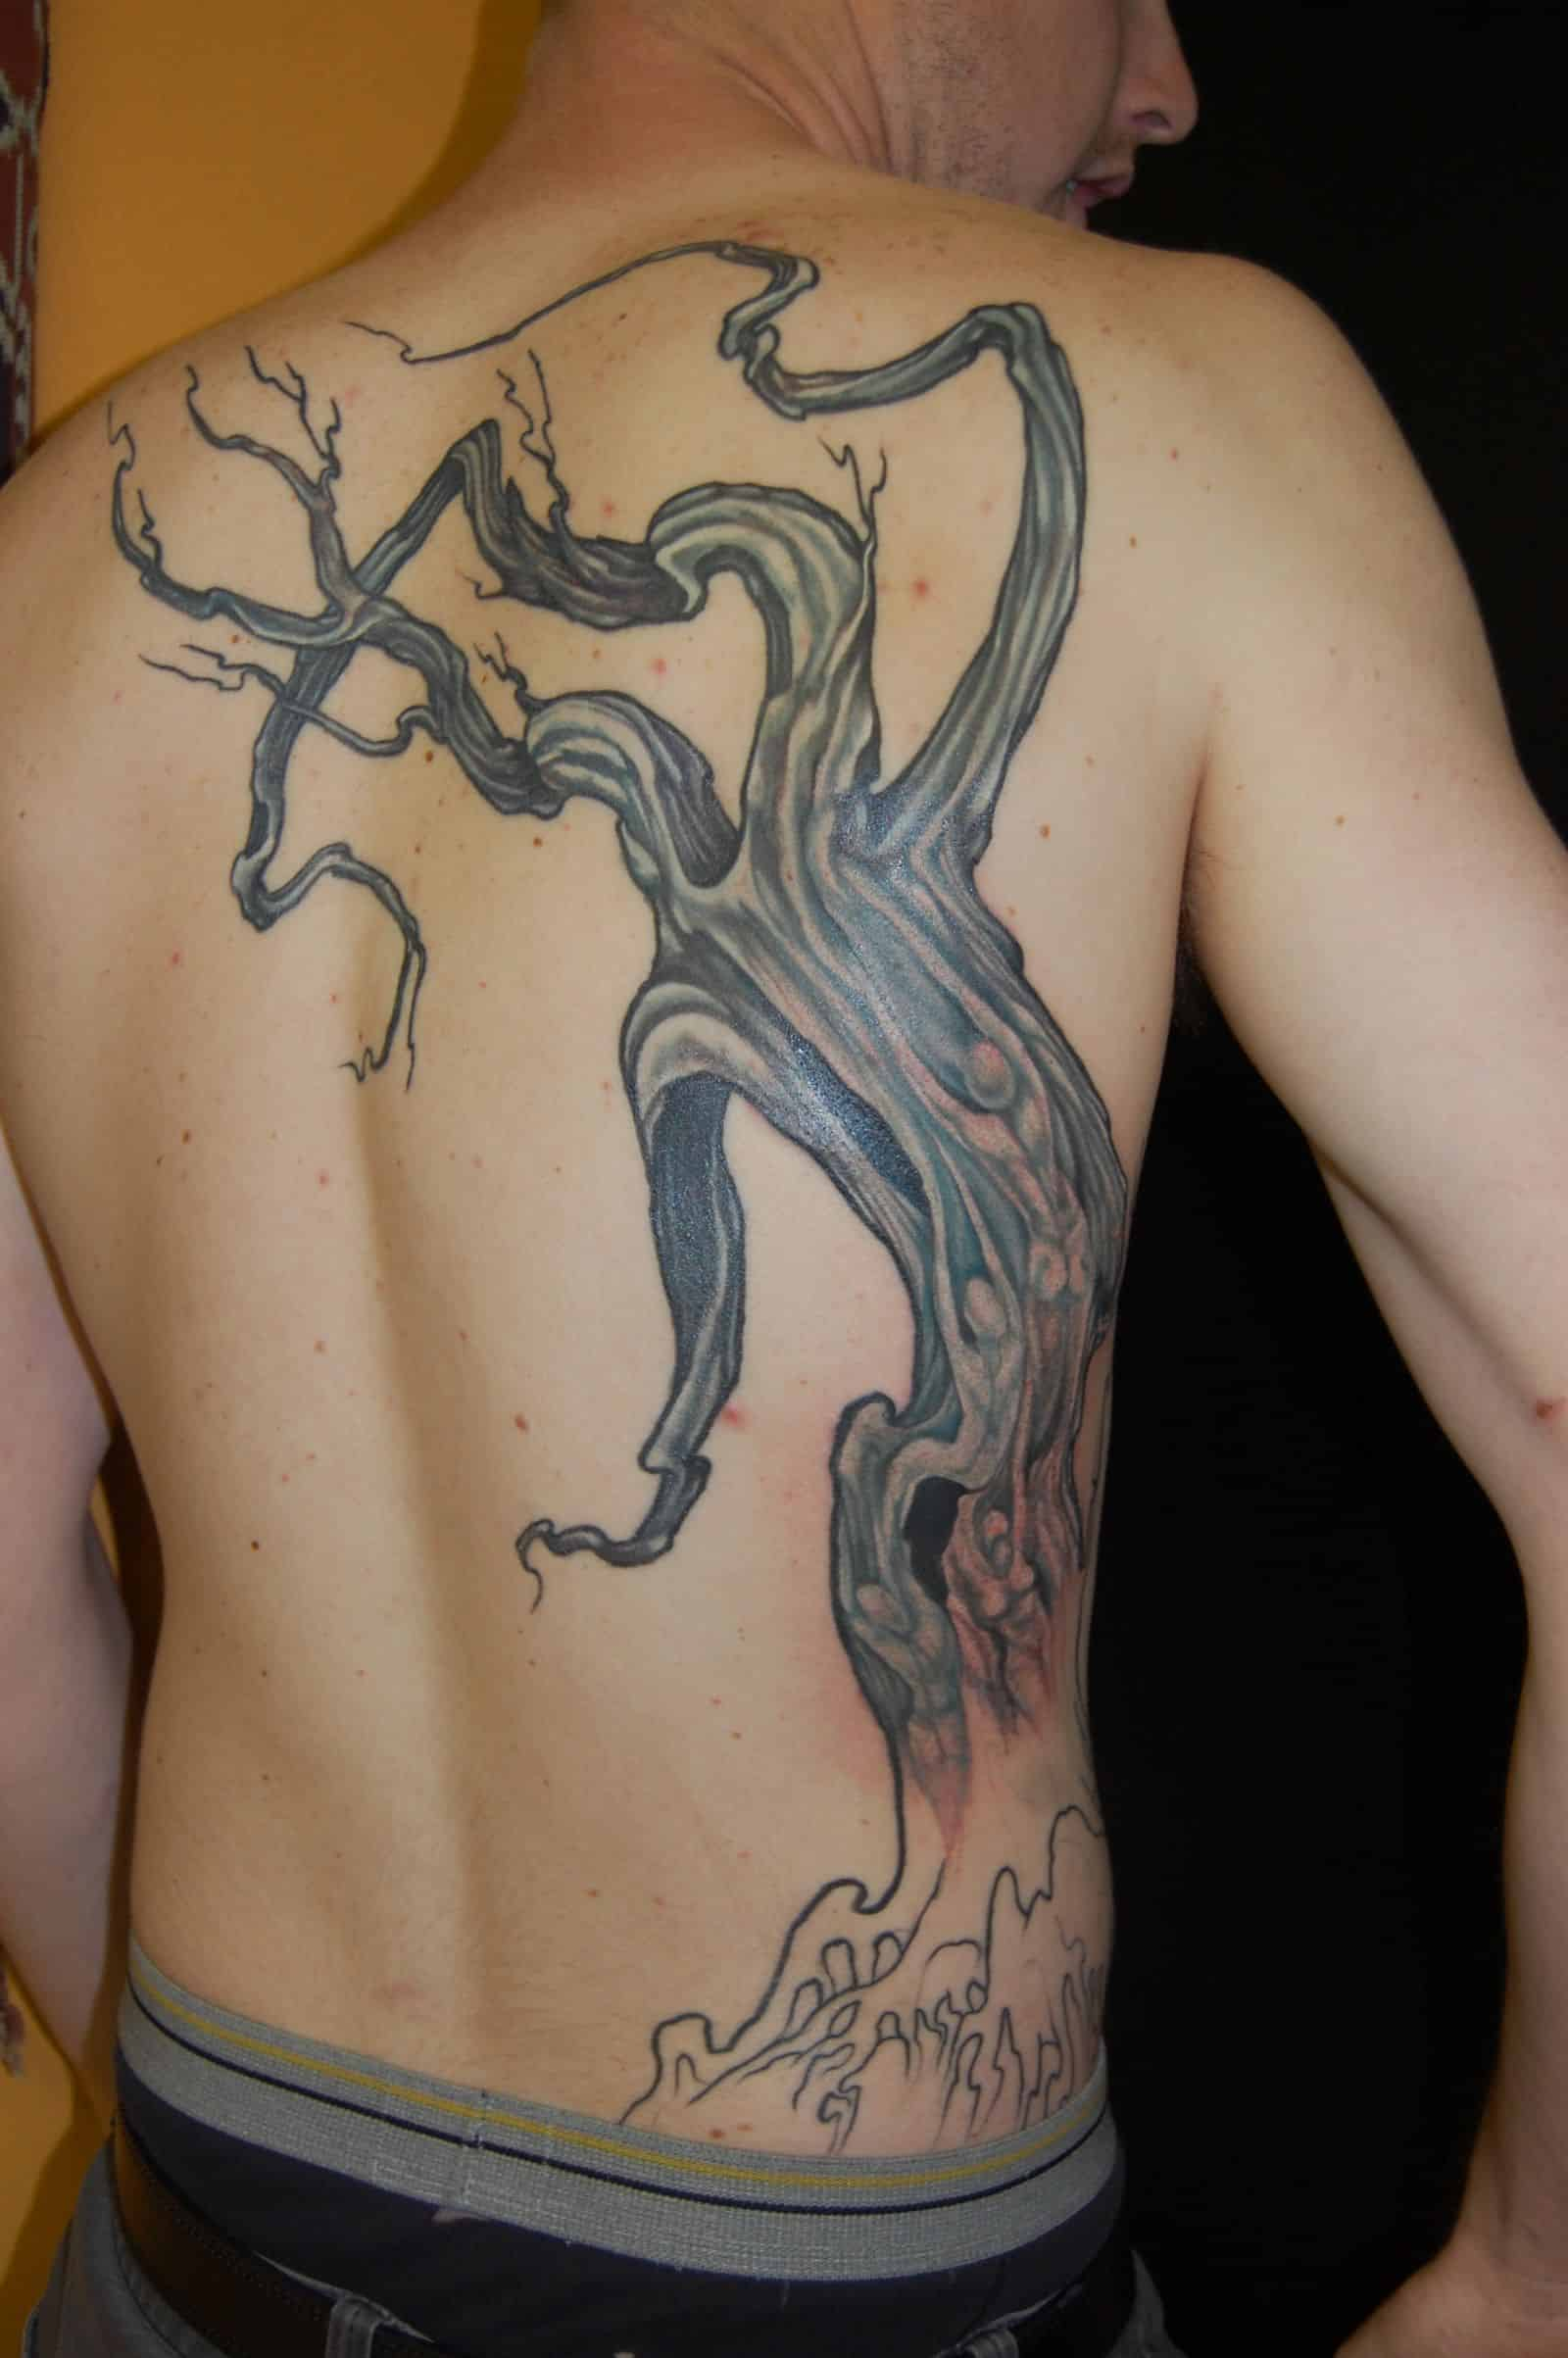 The Giving Tree Tattoo